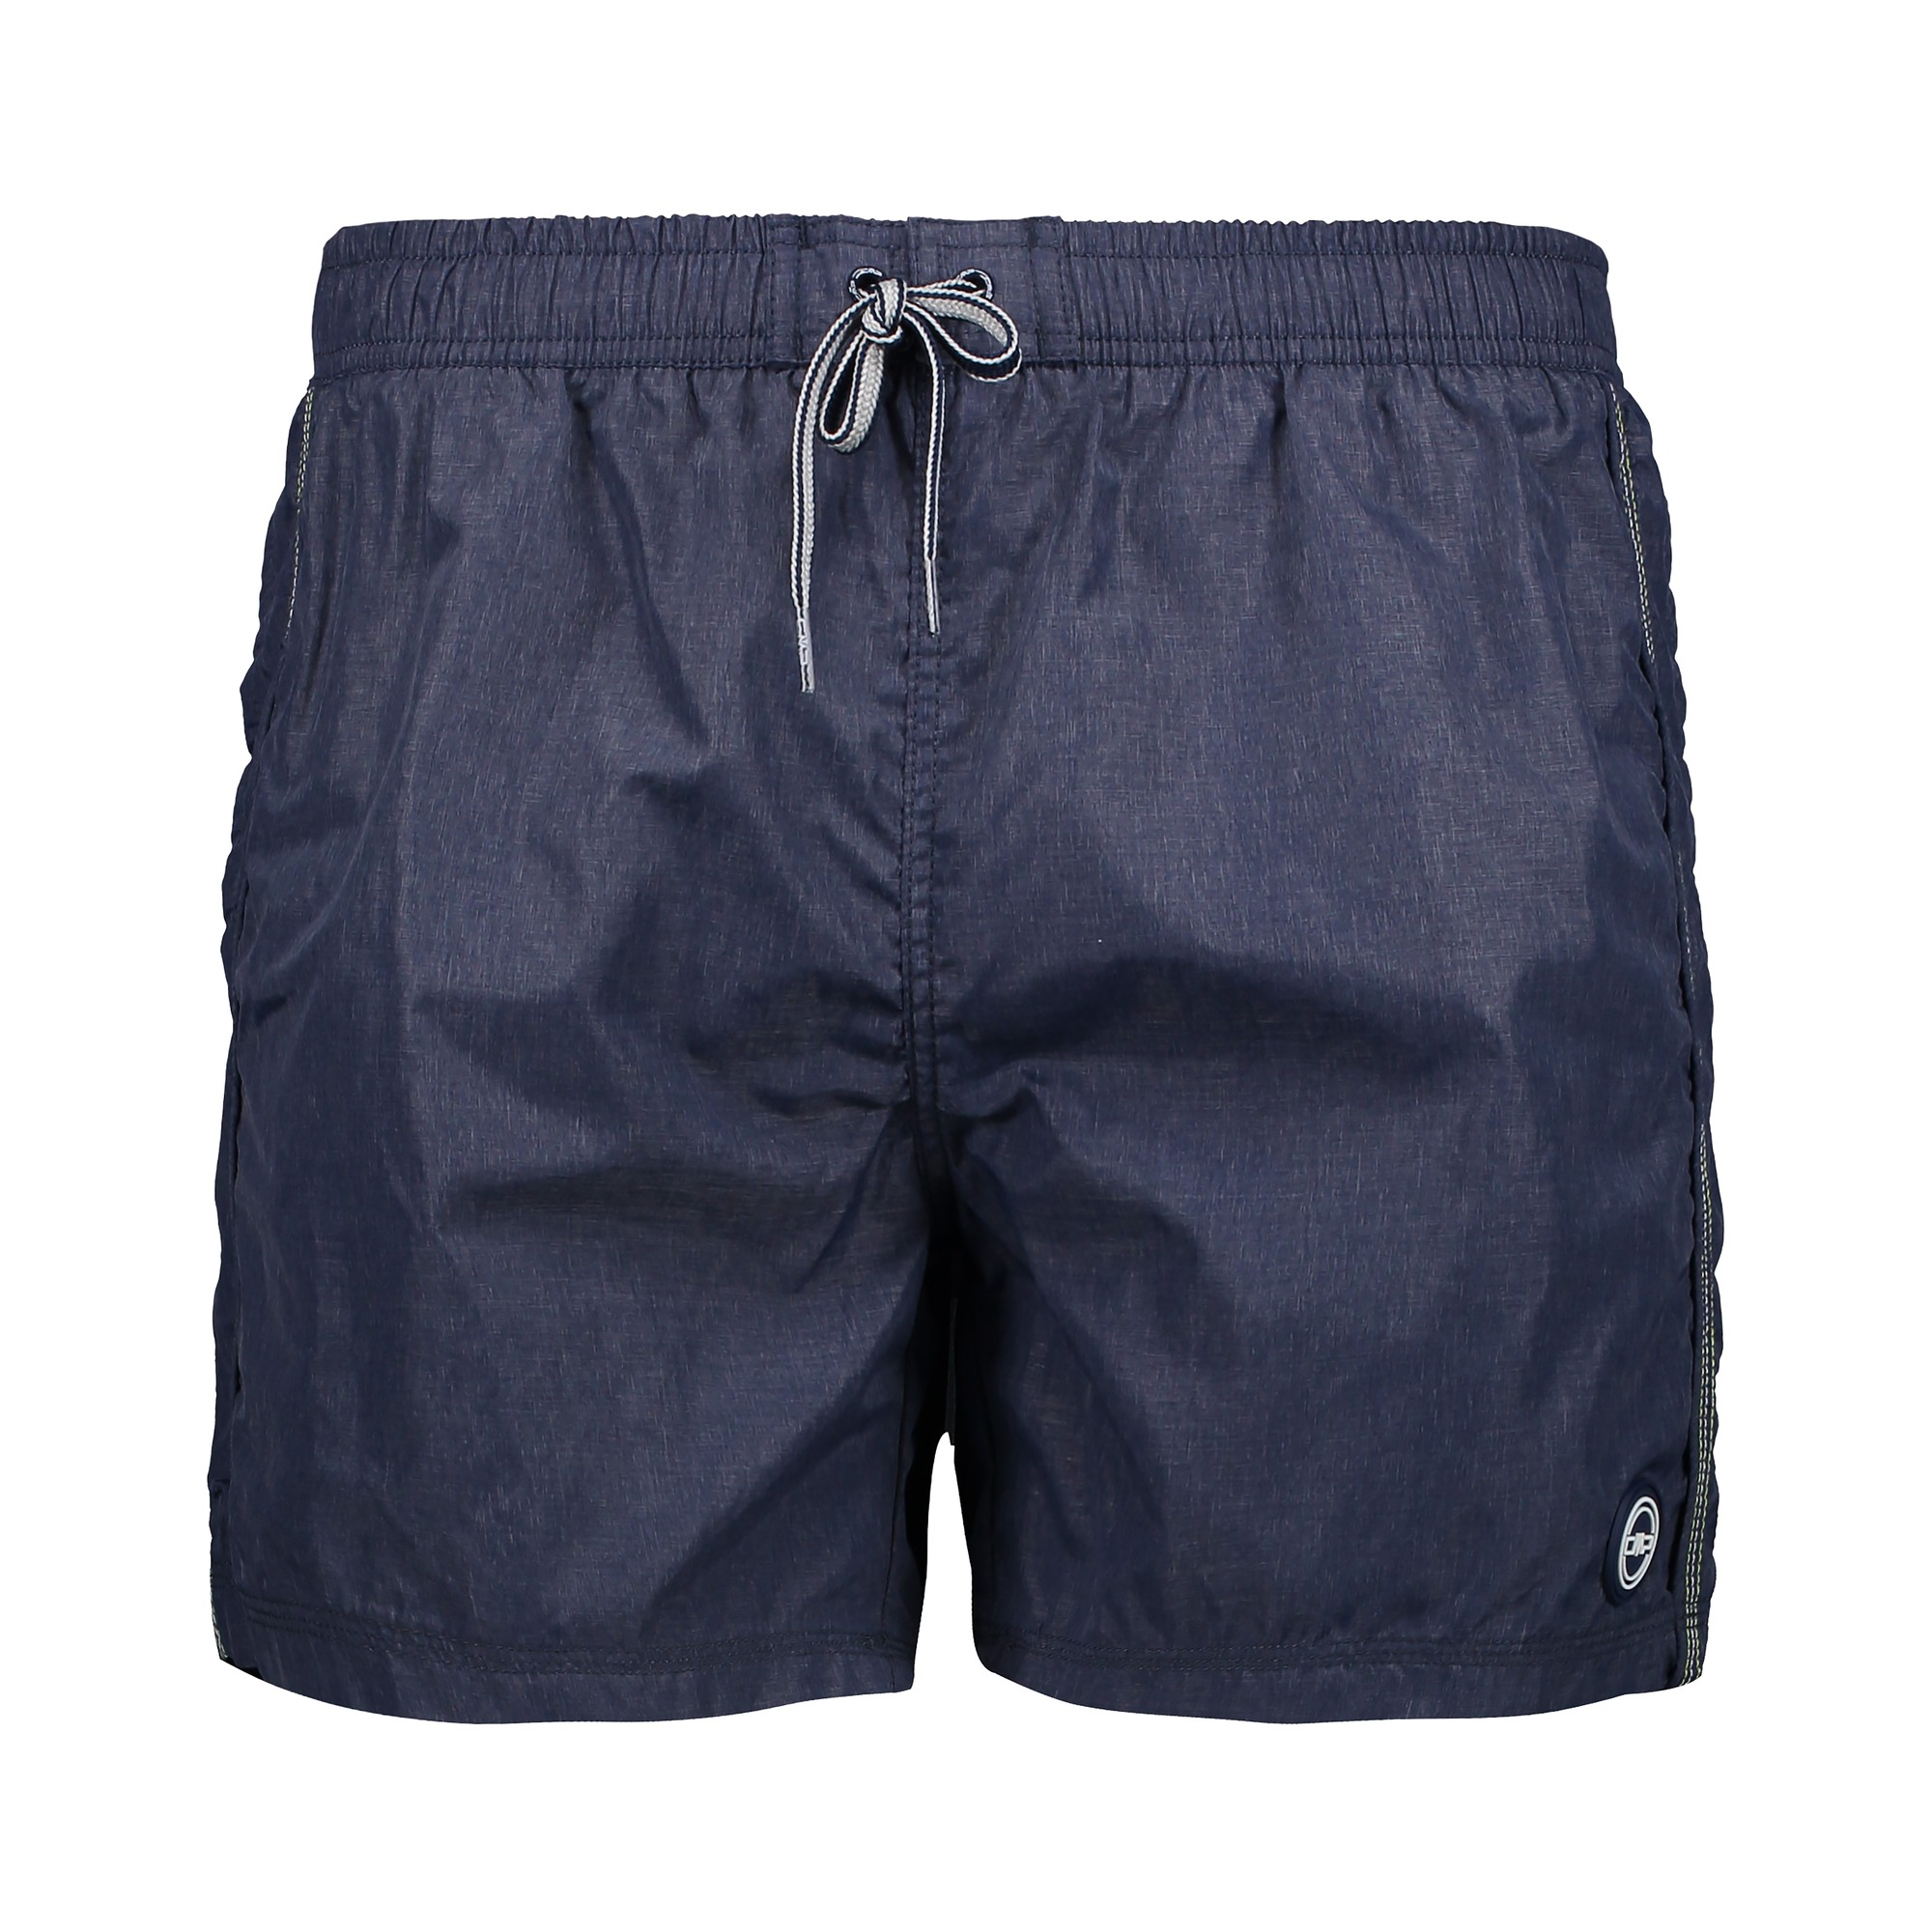 HLAČICE CMP BEACH SHORT M 39R9007 M996 NAVY